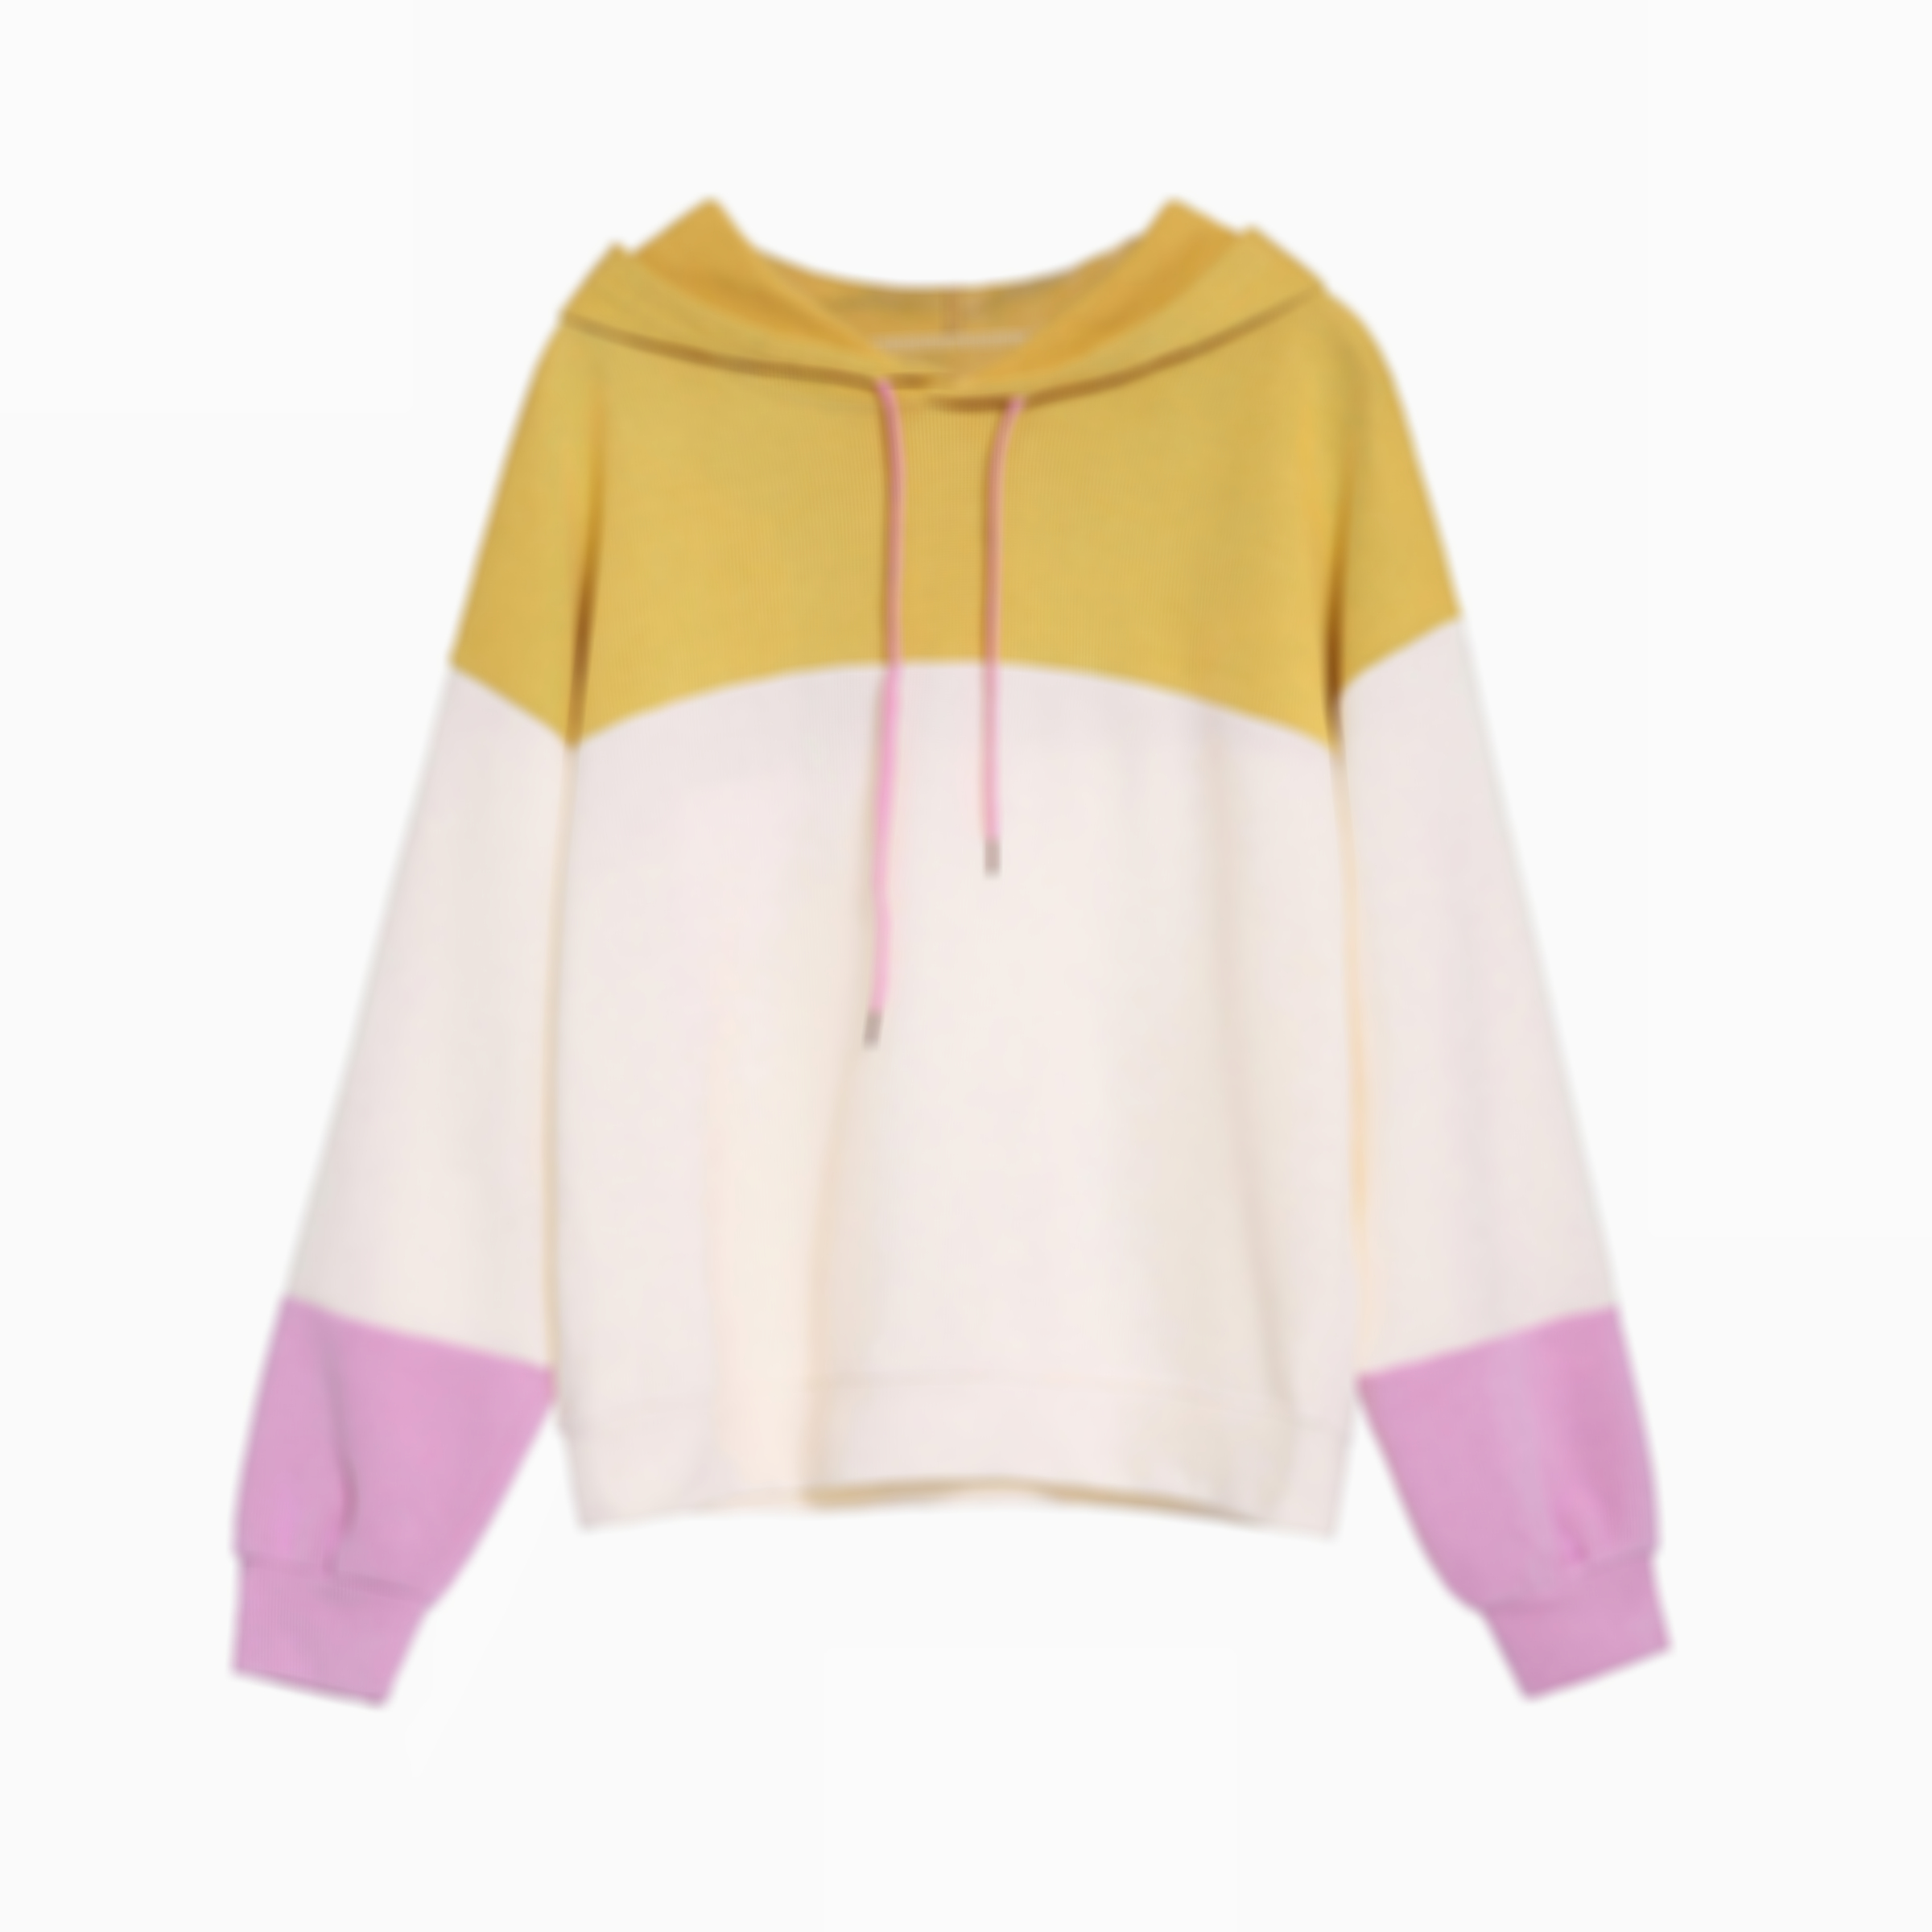 Street Colorblock Sweatshirt with Drawstring